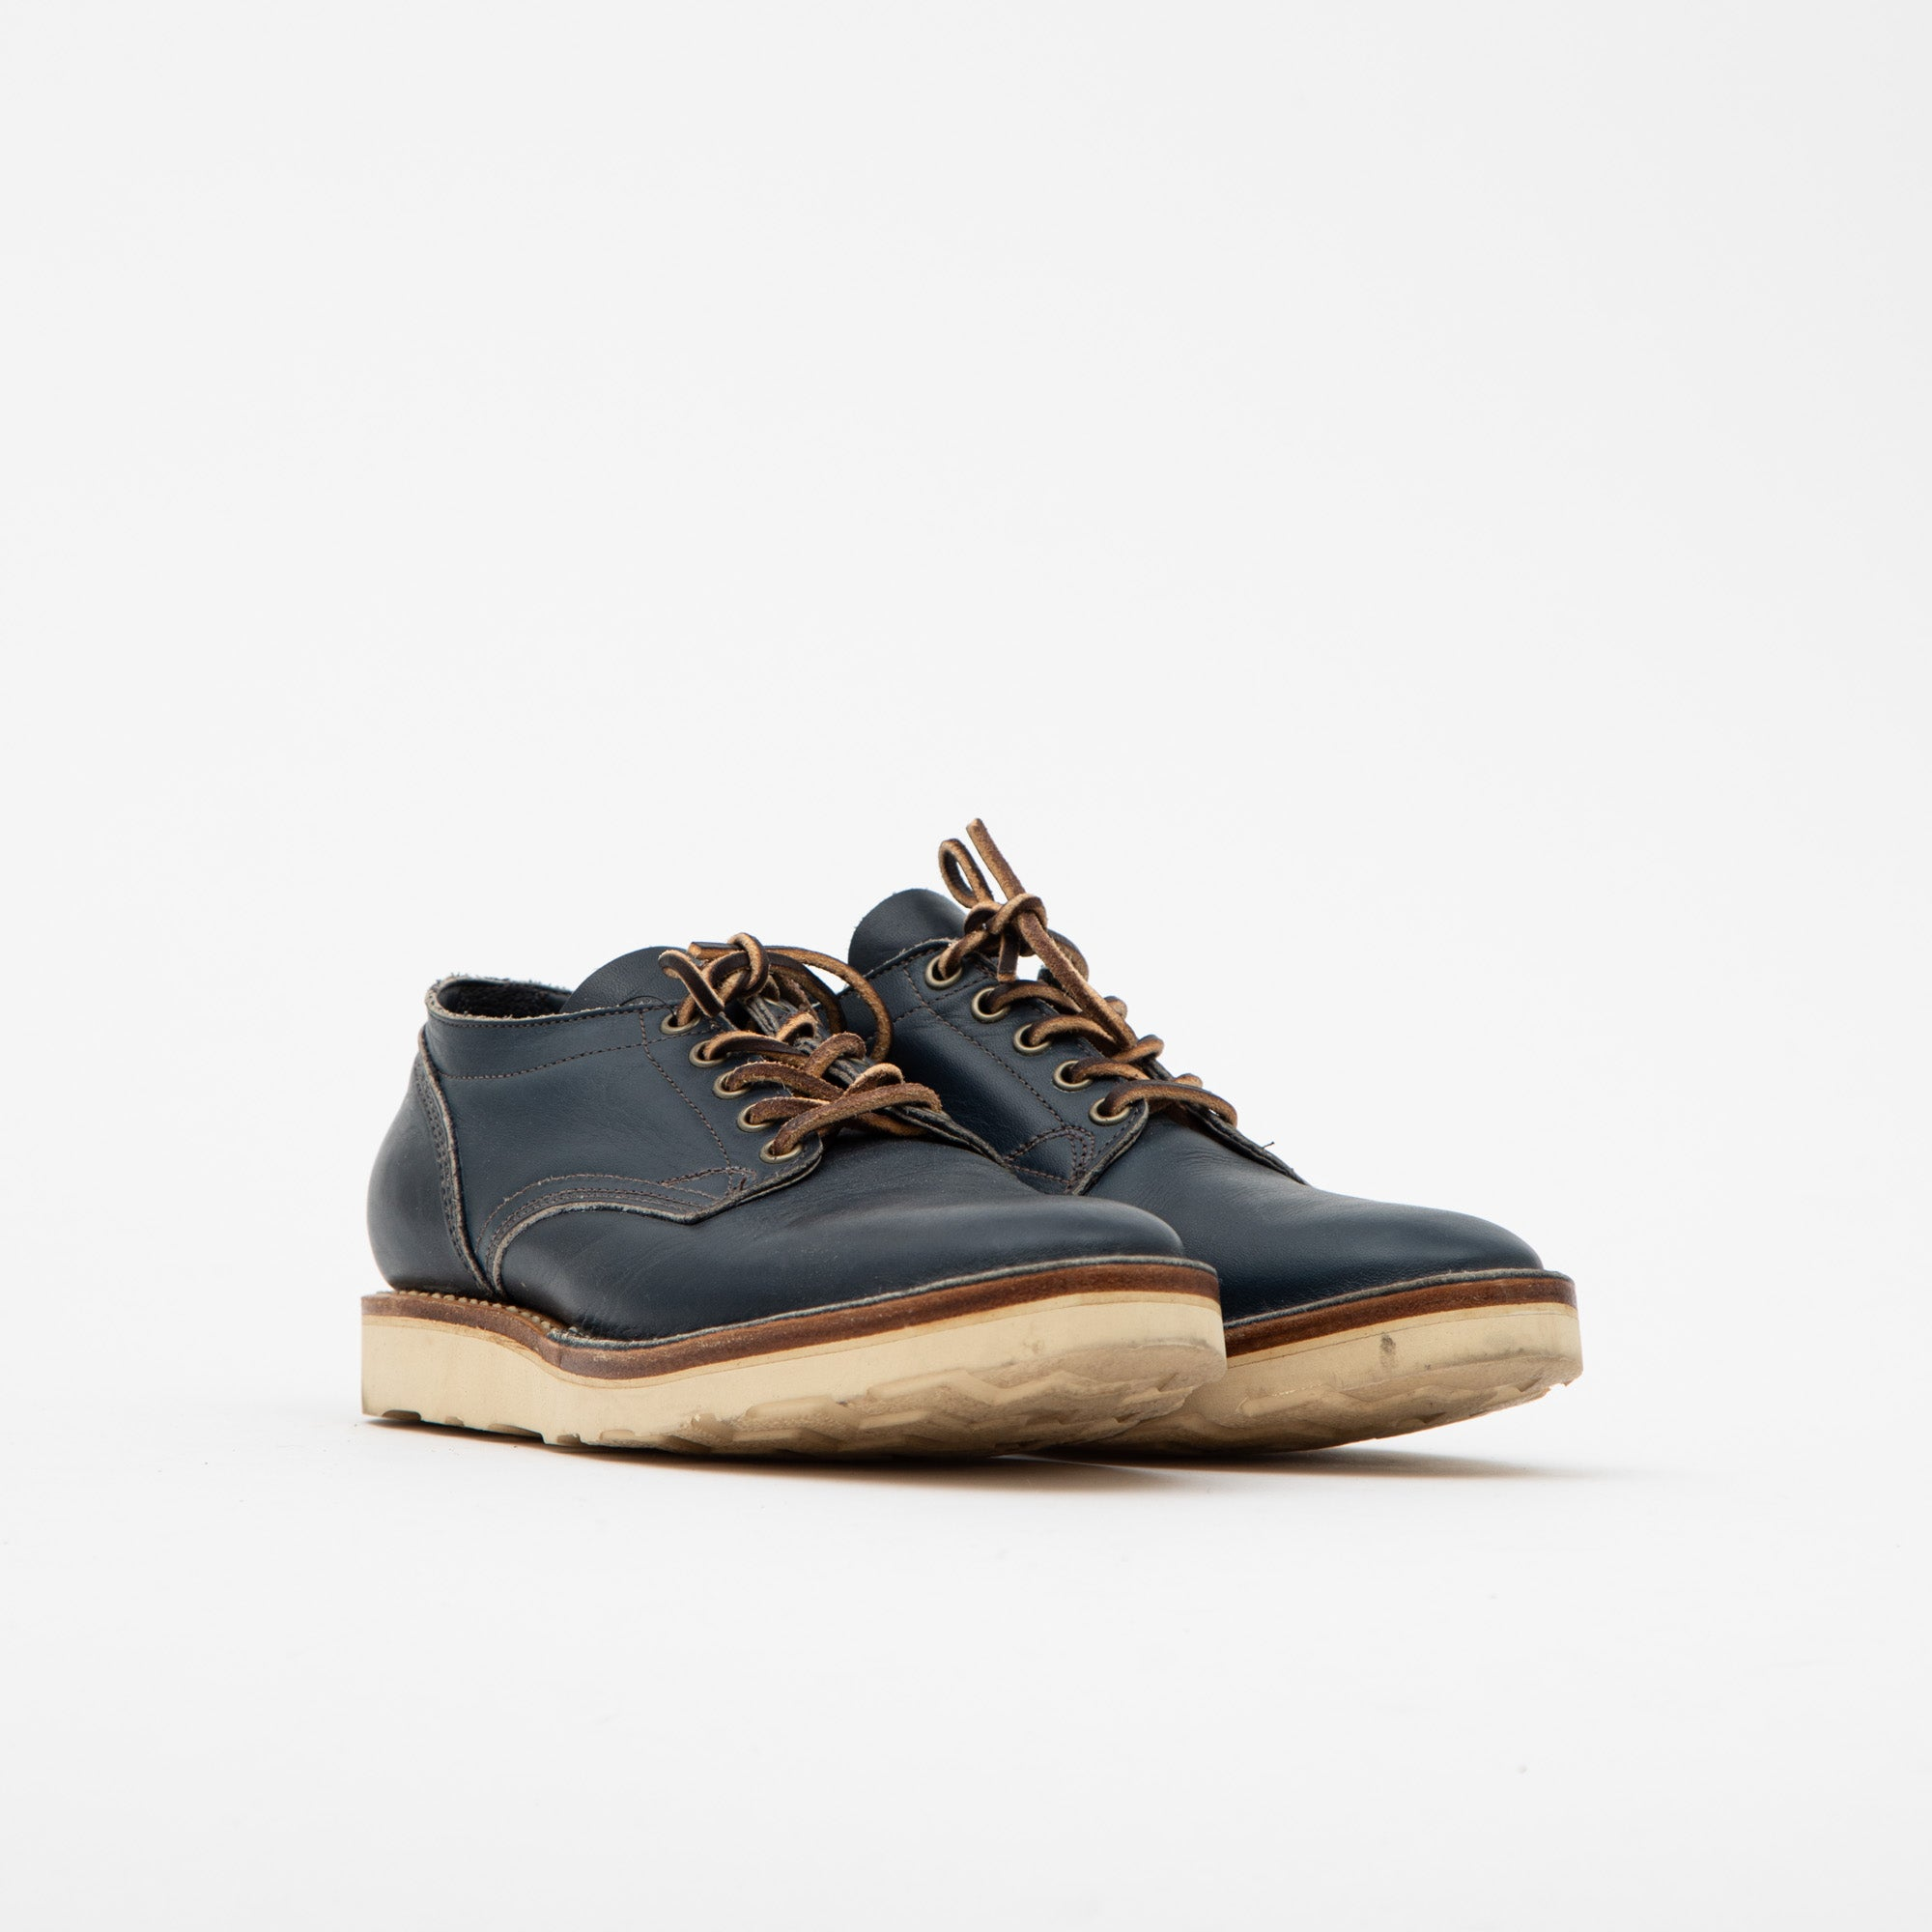 Viberg Boot 145 Leather Derby Shoe